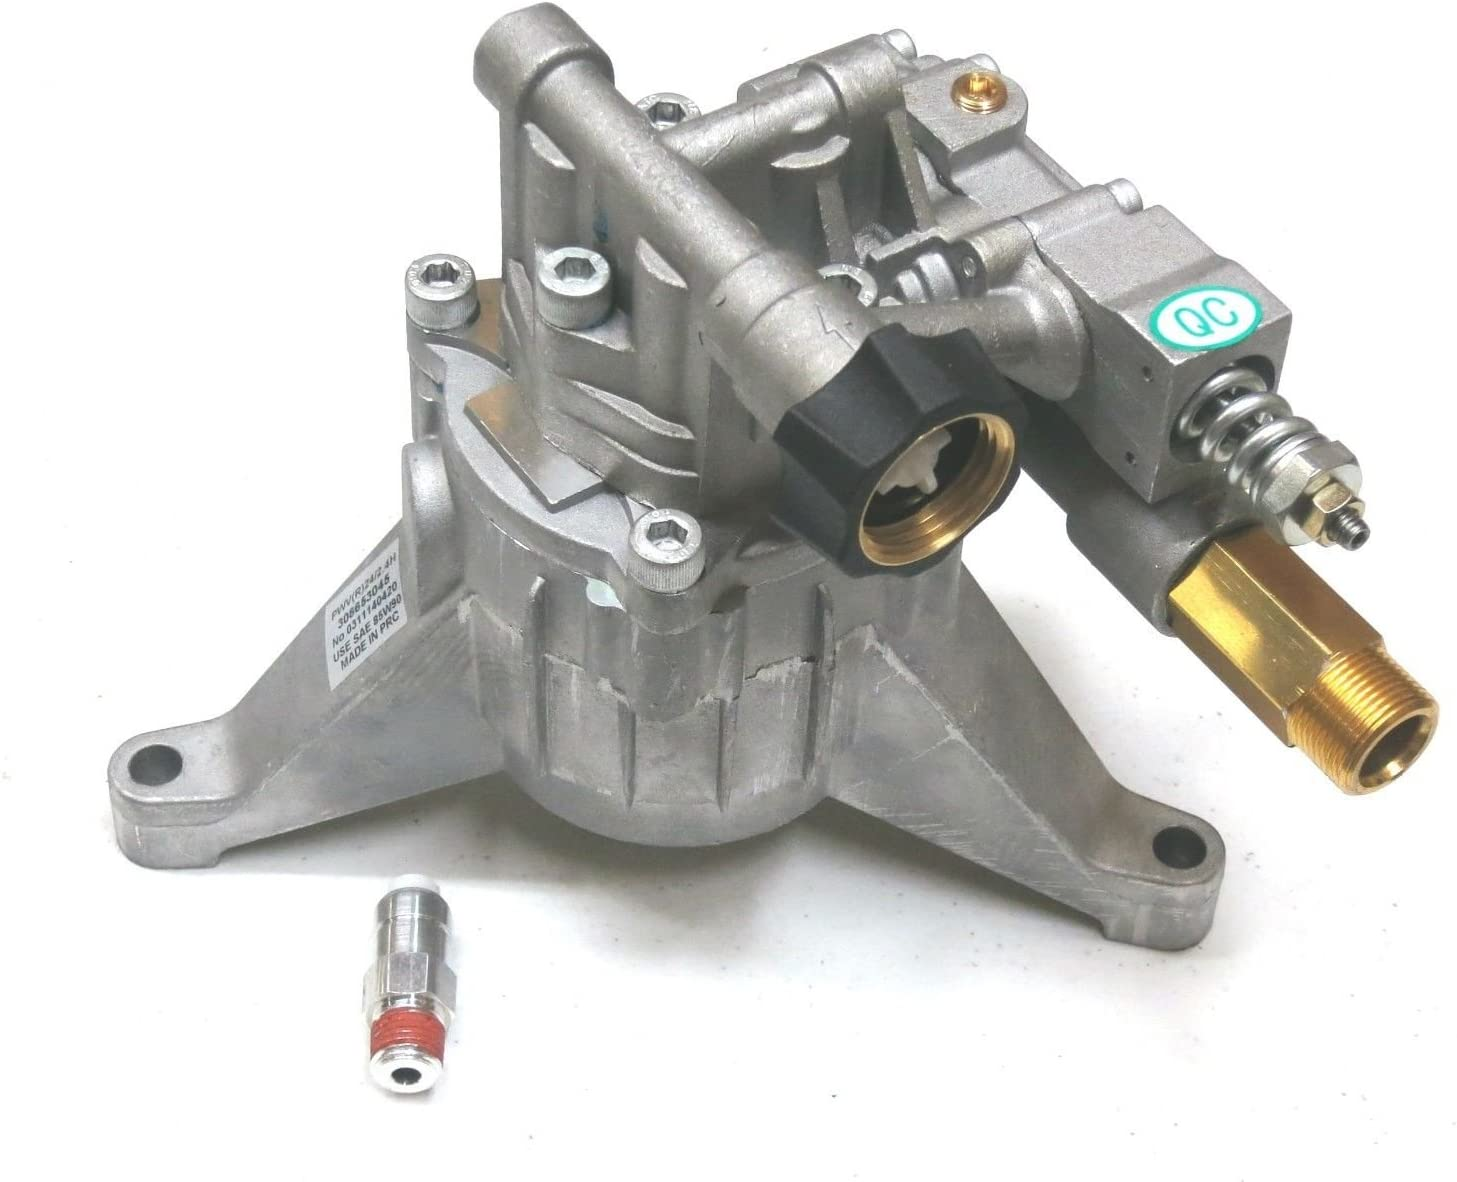 3100 PSI Upgraded POWER PRESSURE WASHER WATER PUMP Troy-Bilt 020415 020415-0 by The ROP Shop